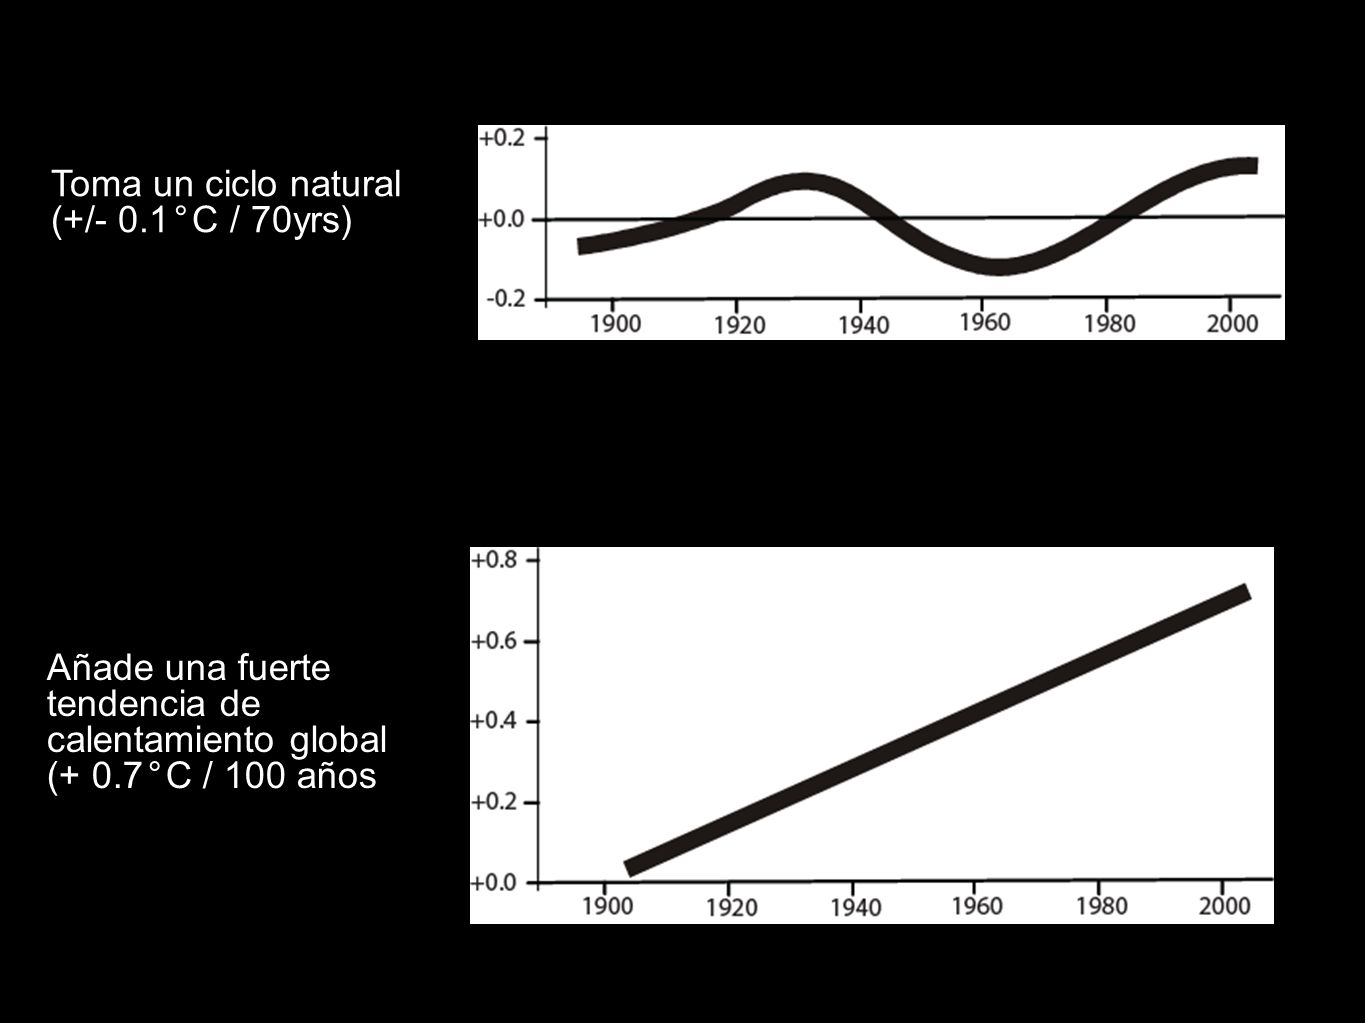 + Toma un ciclo natural (+/- 0.1°C / 70yrs):